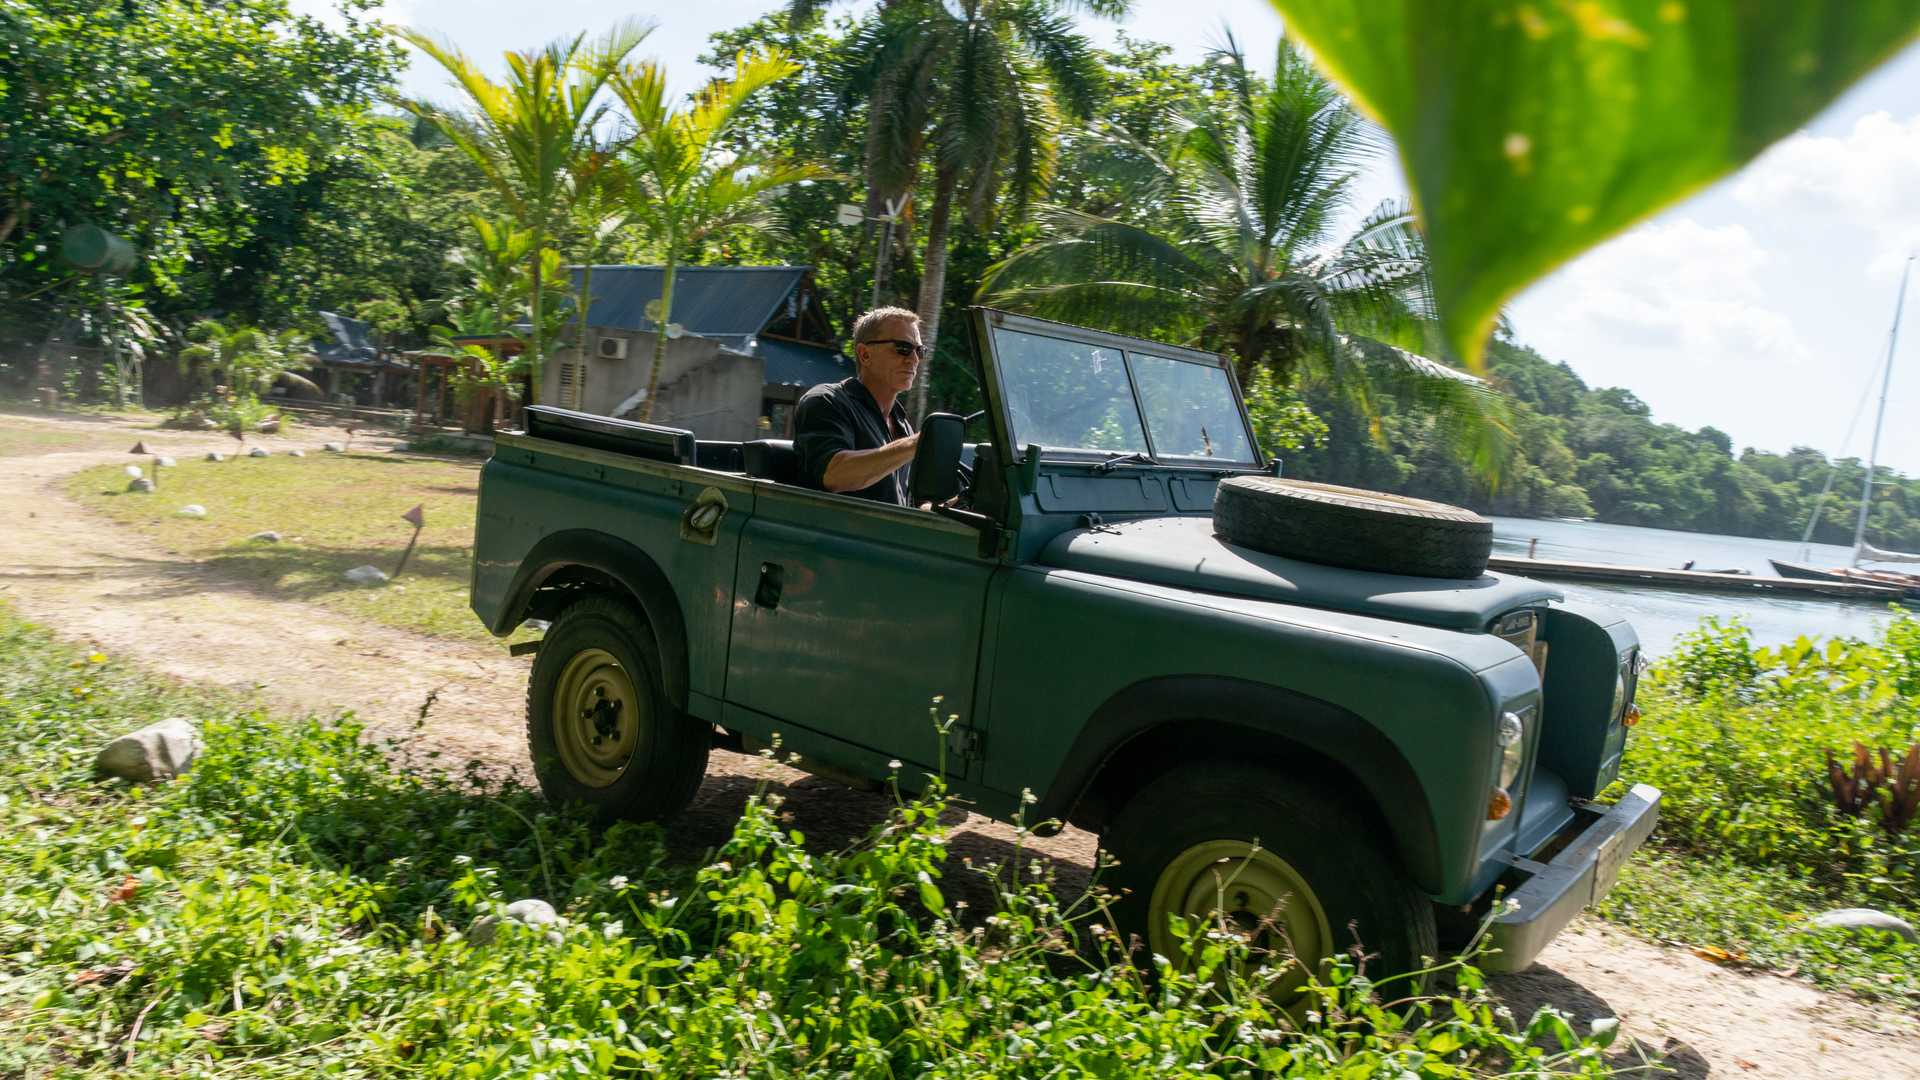 james-bond-in-his-land-rover-series-iii-in-jamaica